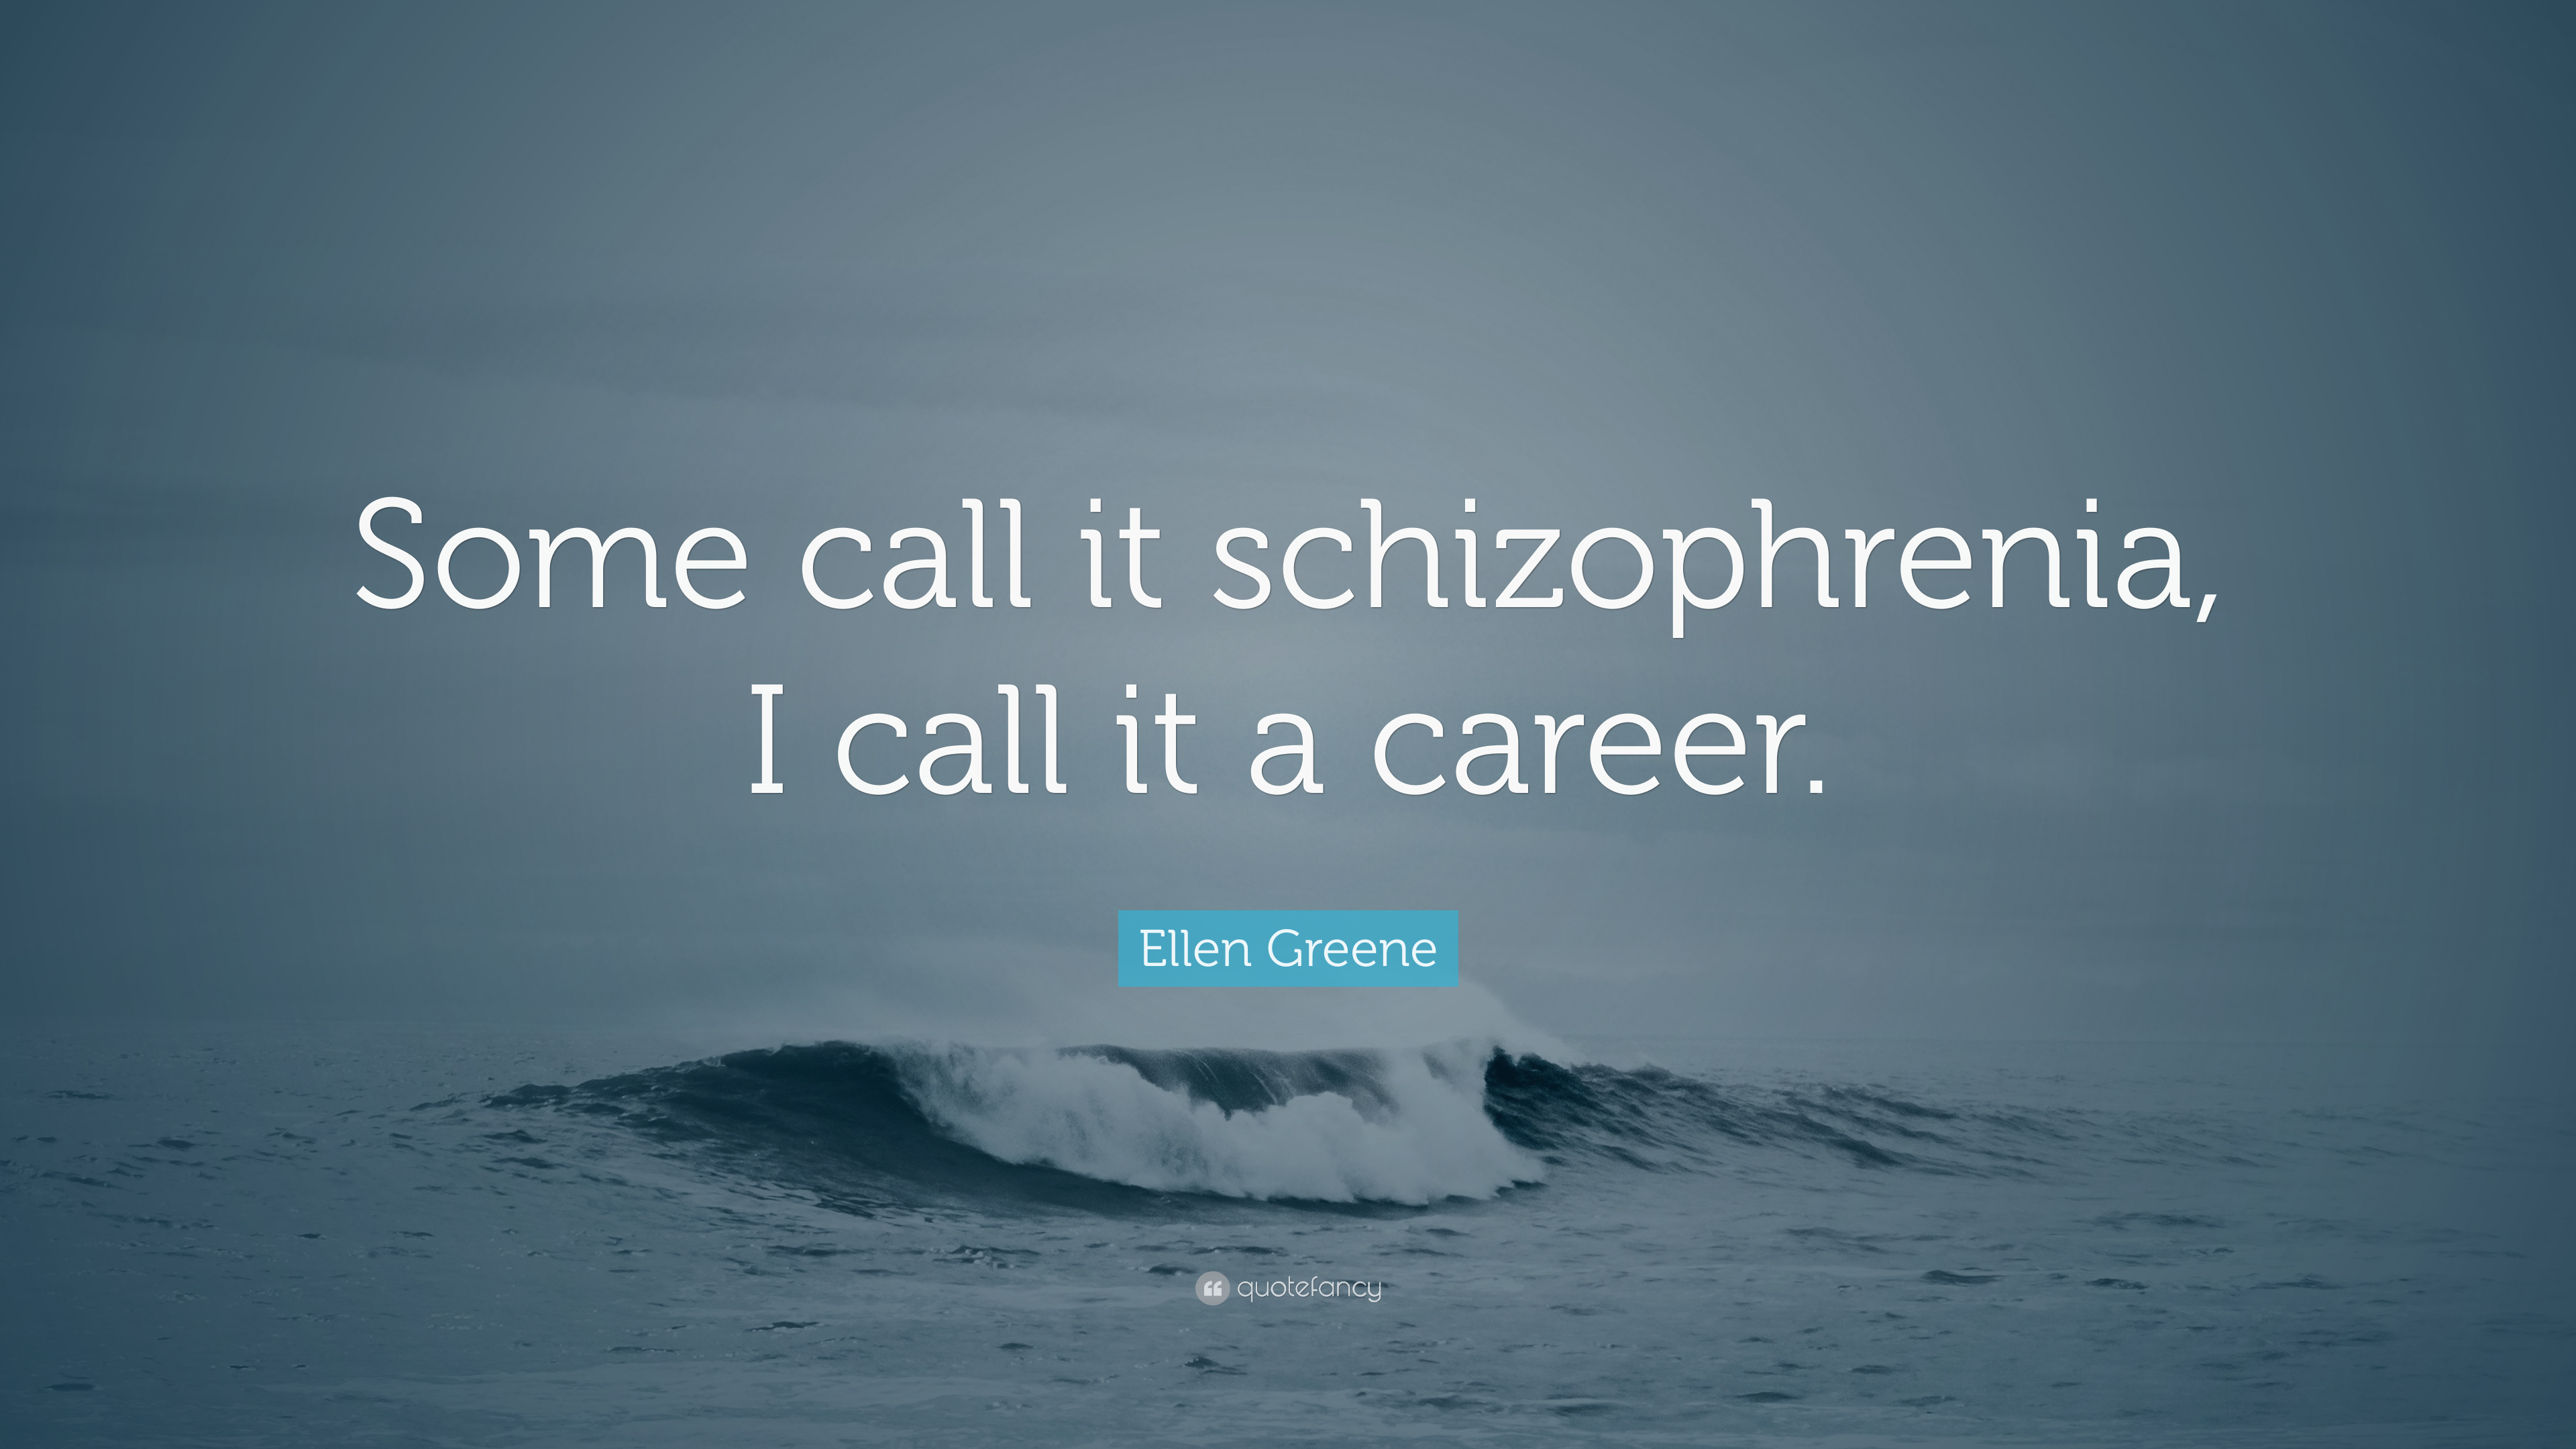 Ellen Greene Quote Some Call It Schizophrenia I Call It A Career 7 Wallpapers Quotefancy